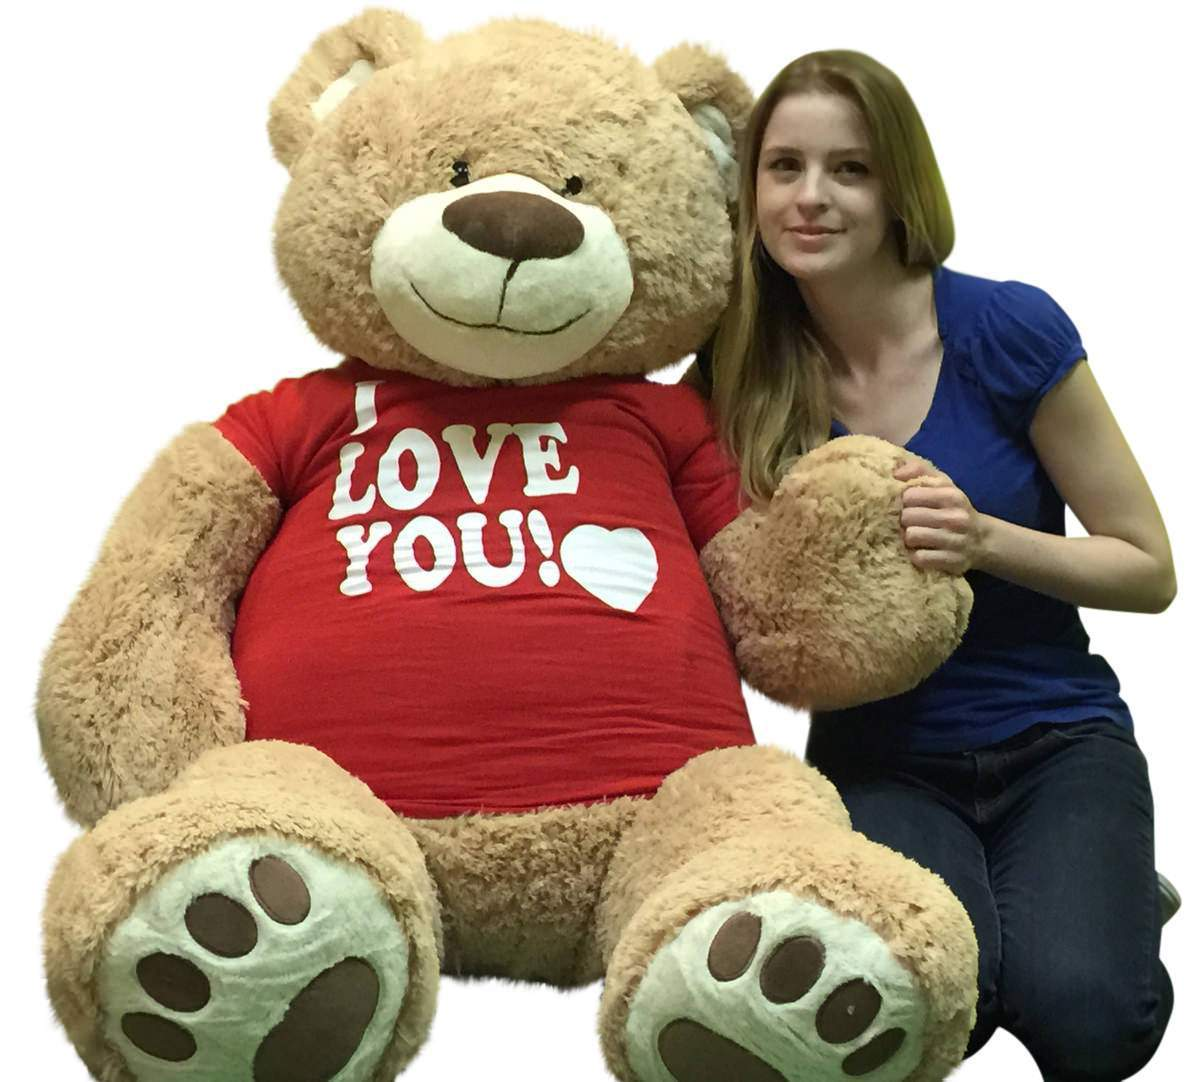 I Love You Giant 5 Foot Teddy Bear Soft 60 Inch Wears I Love You T-shirt Weighs 16 Pounds by BigPlush